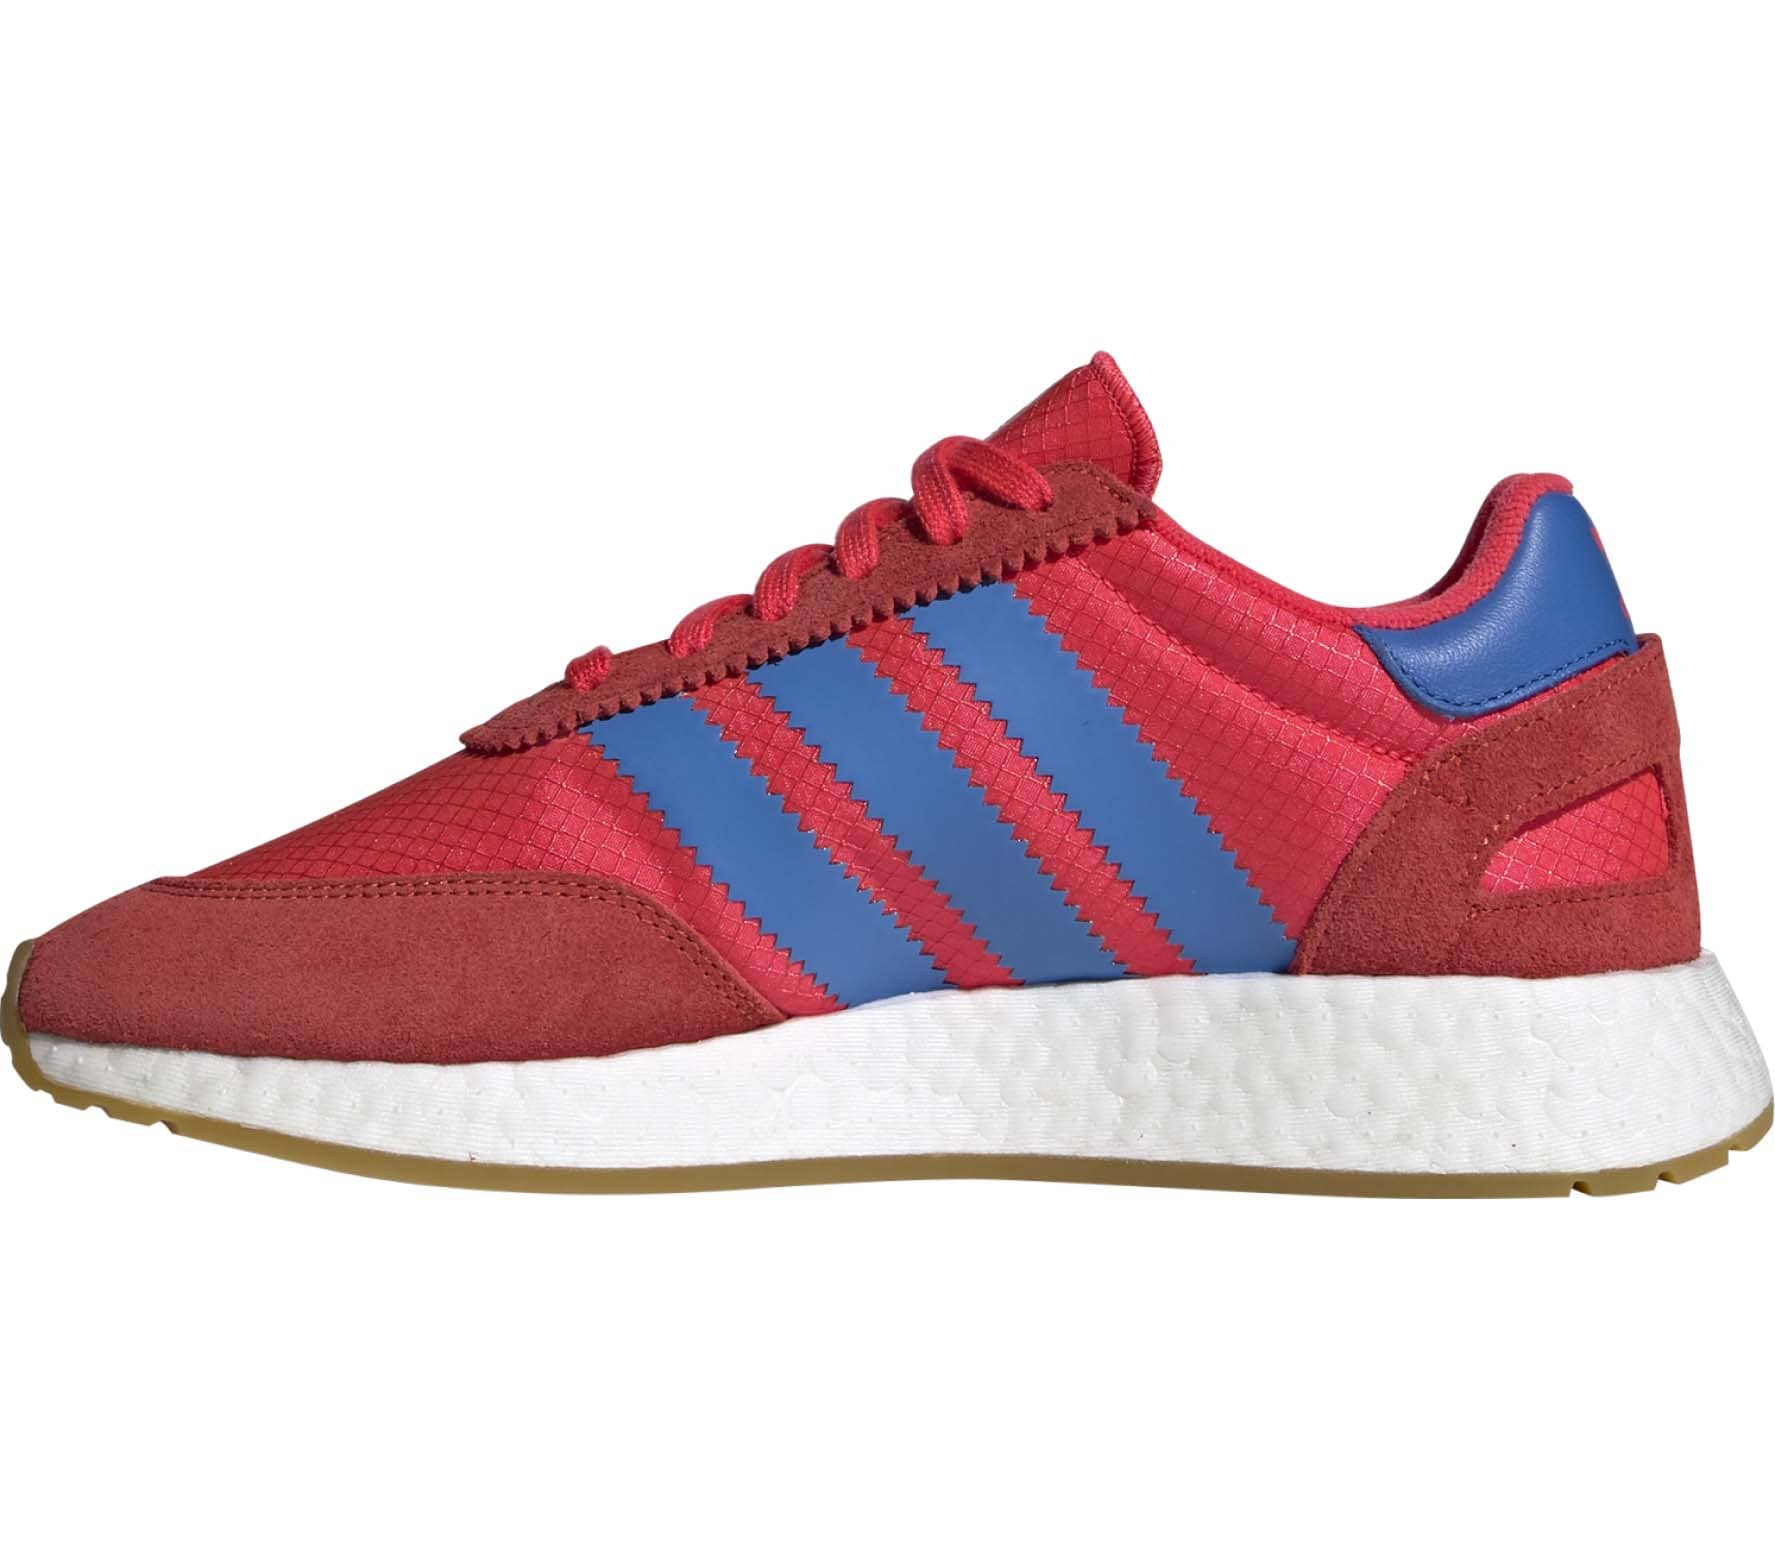 la moitié 505f1 57fd4 adidas Originals I-5923 Damen Hommes Baskets rouge